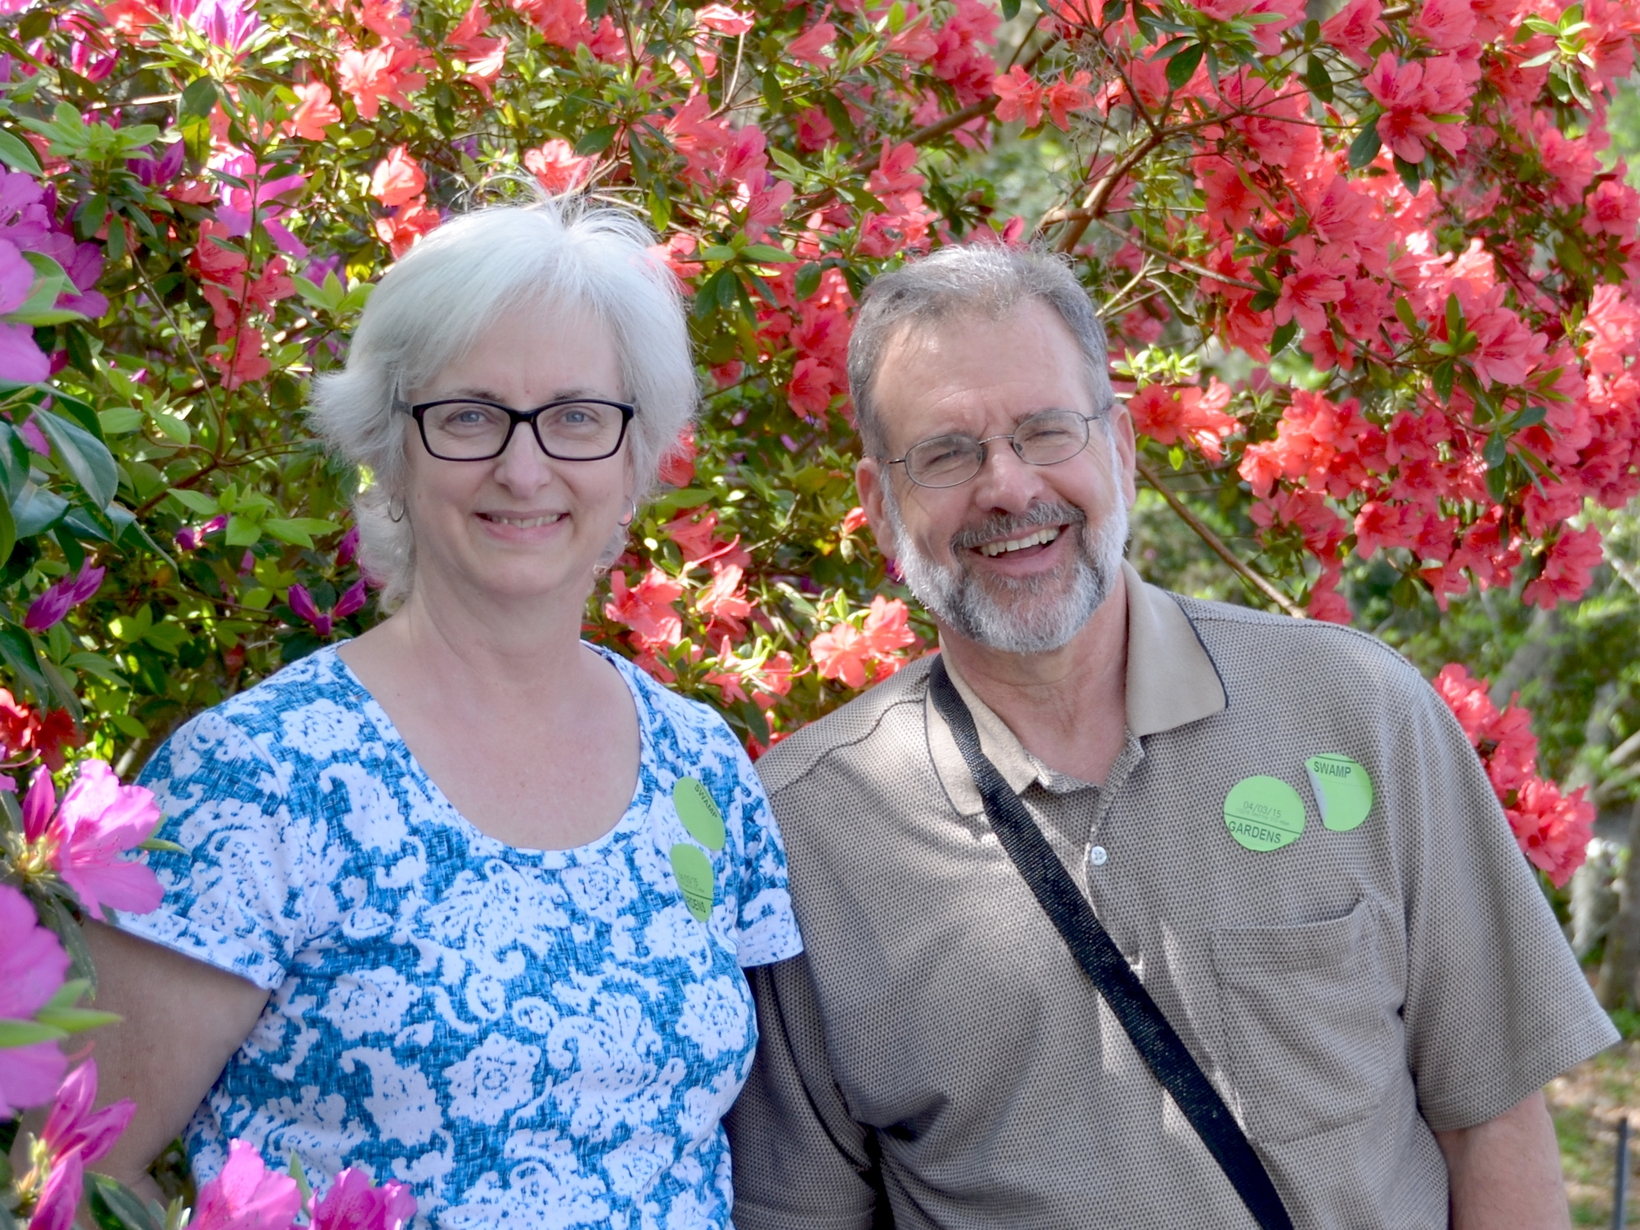 Kenny & Kim from Beulaville, North Carolina, United States